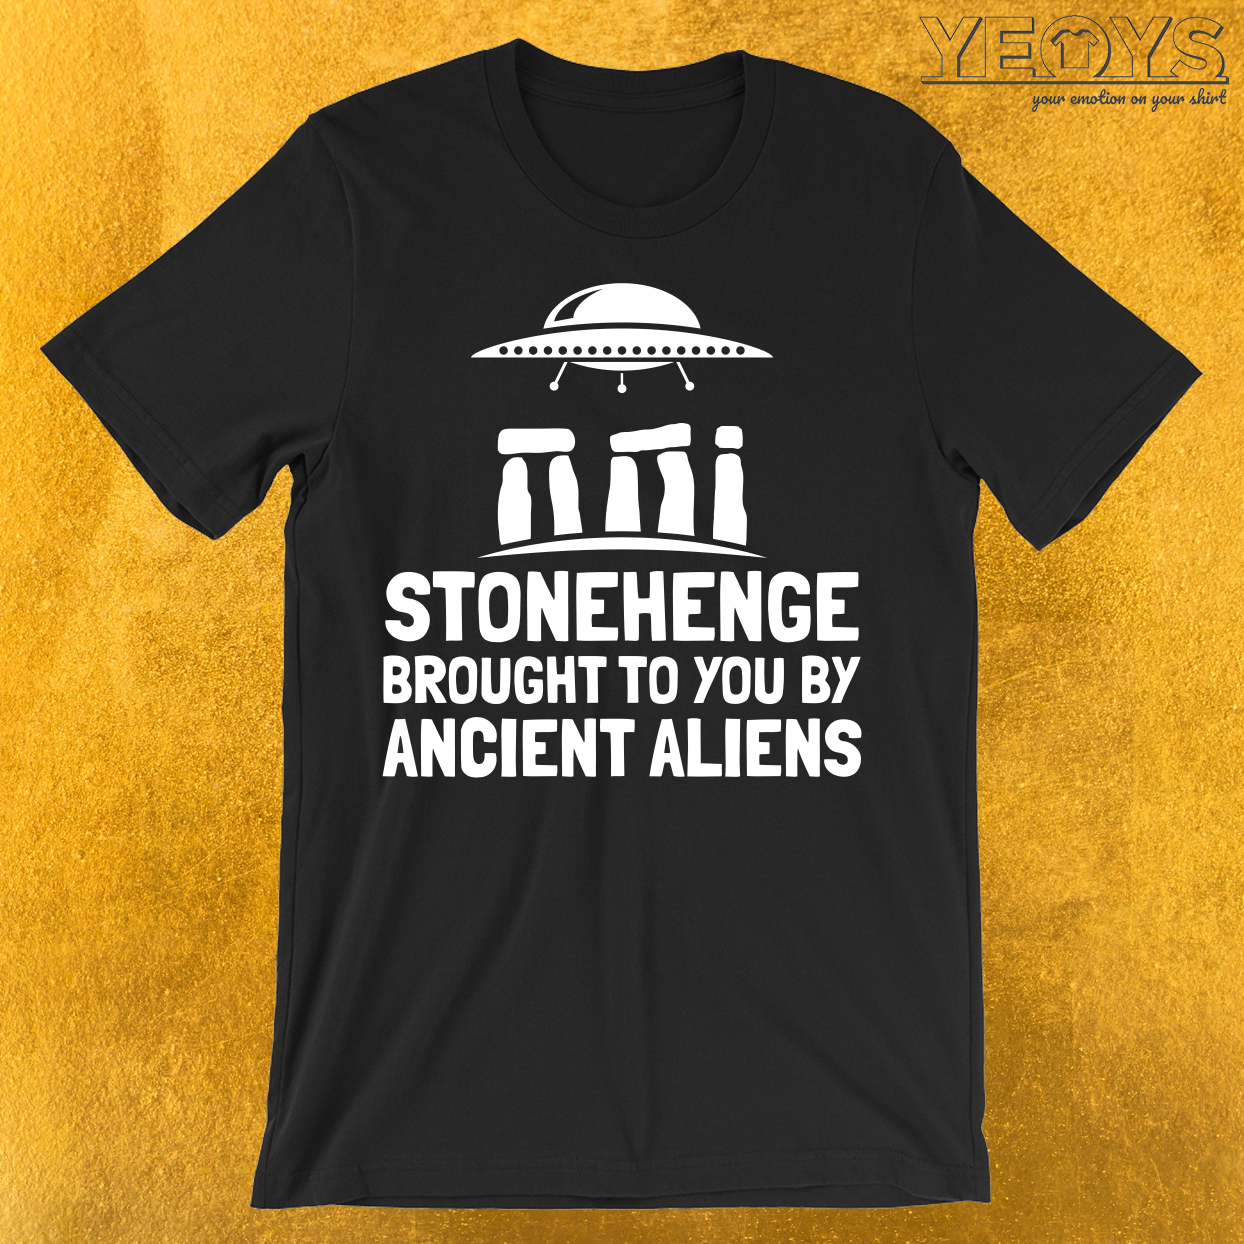 Stonehenge Brought To You By Ancient Aliens T-Shirt